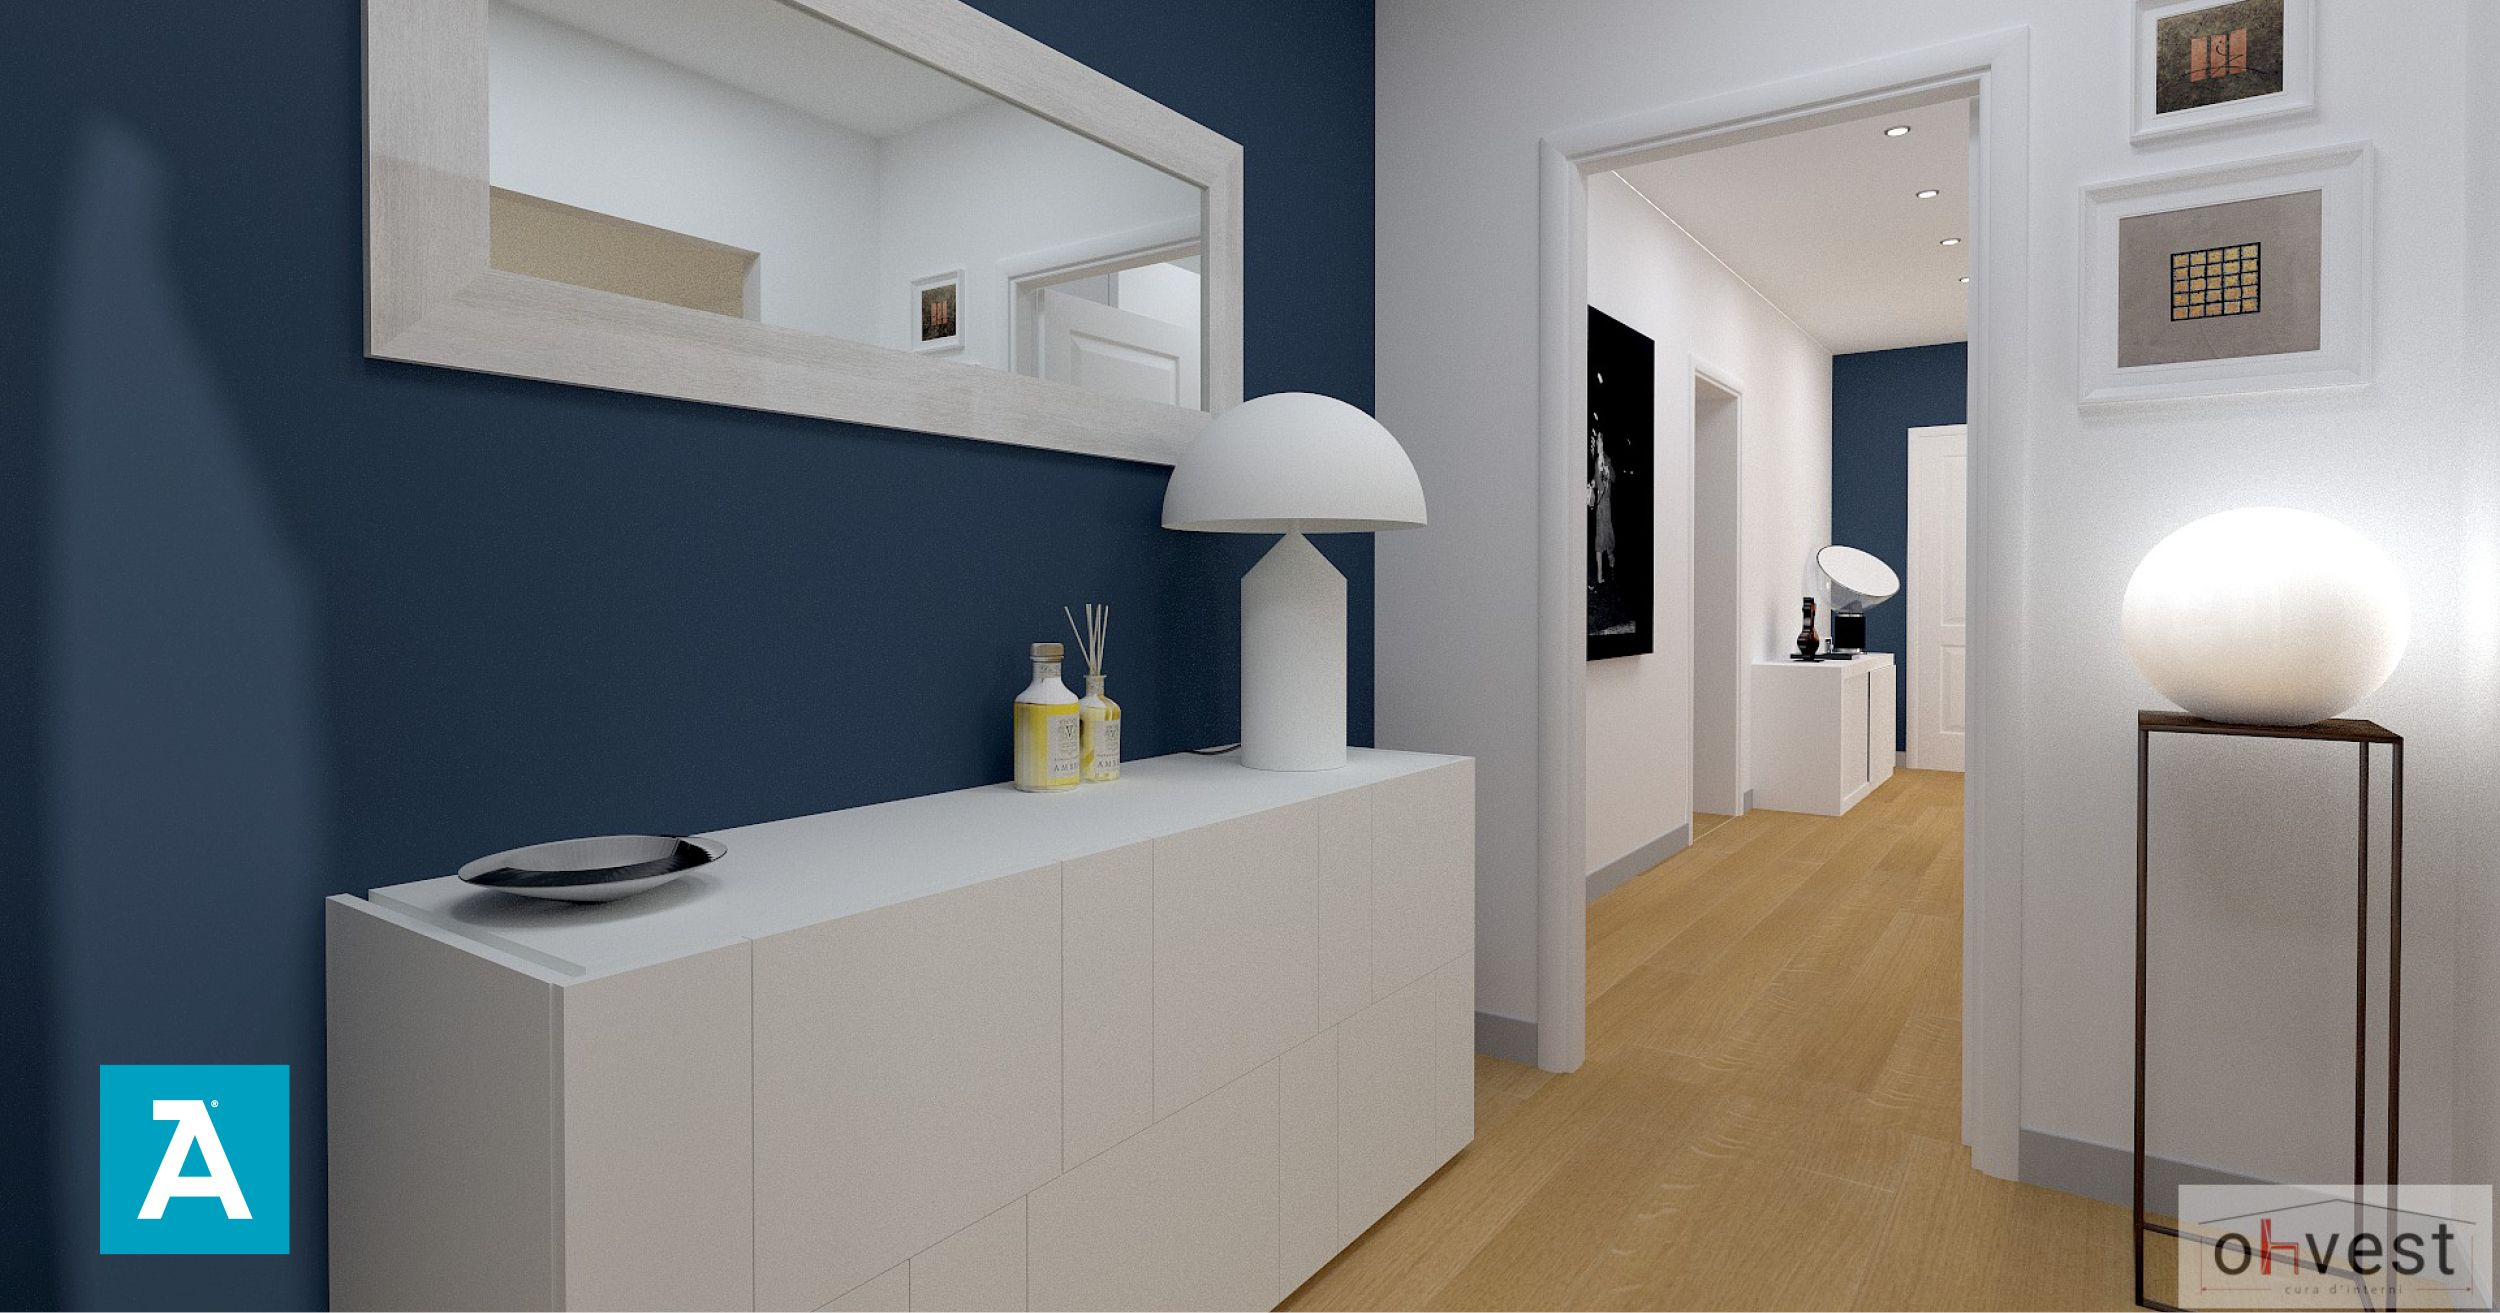 Arredocadthis Is What You Can Do With Arredocad Only One Interior Design Software 3d To Realize Your Interior Design Projects Request Your Free Dem